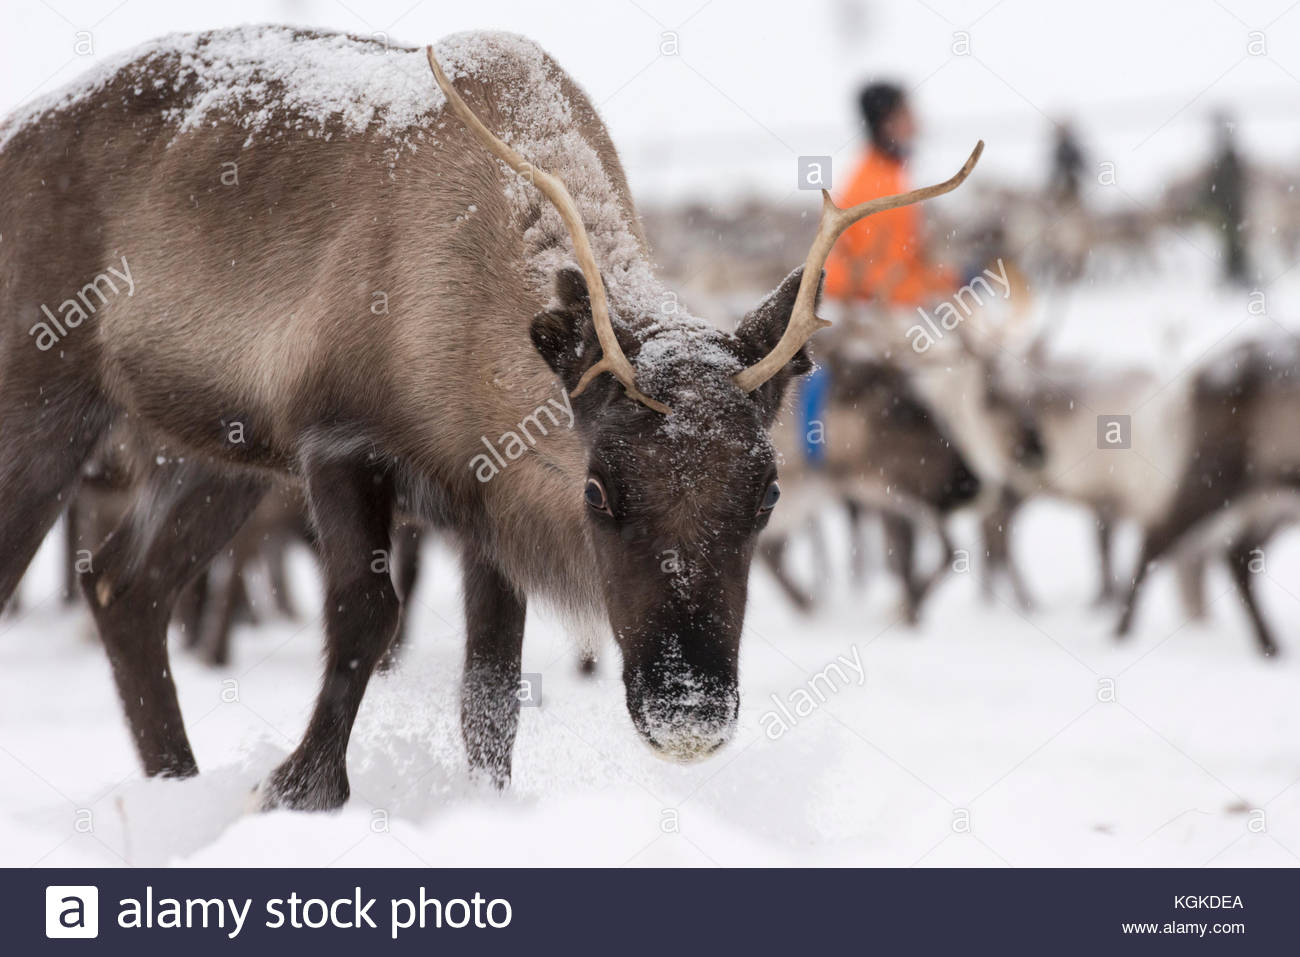 Portrait of domesticated Reindeer, Rangifer tarandus, herd gathered in an enclosure. - Stock Image